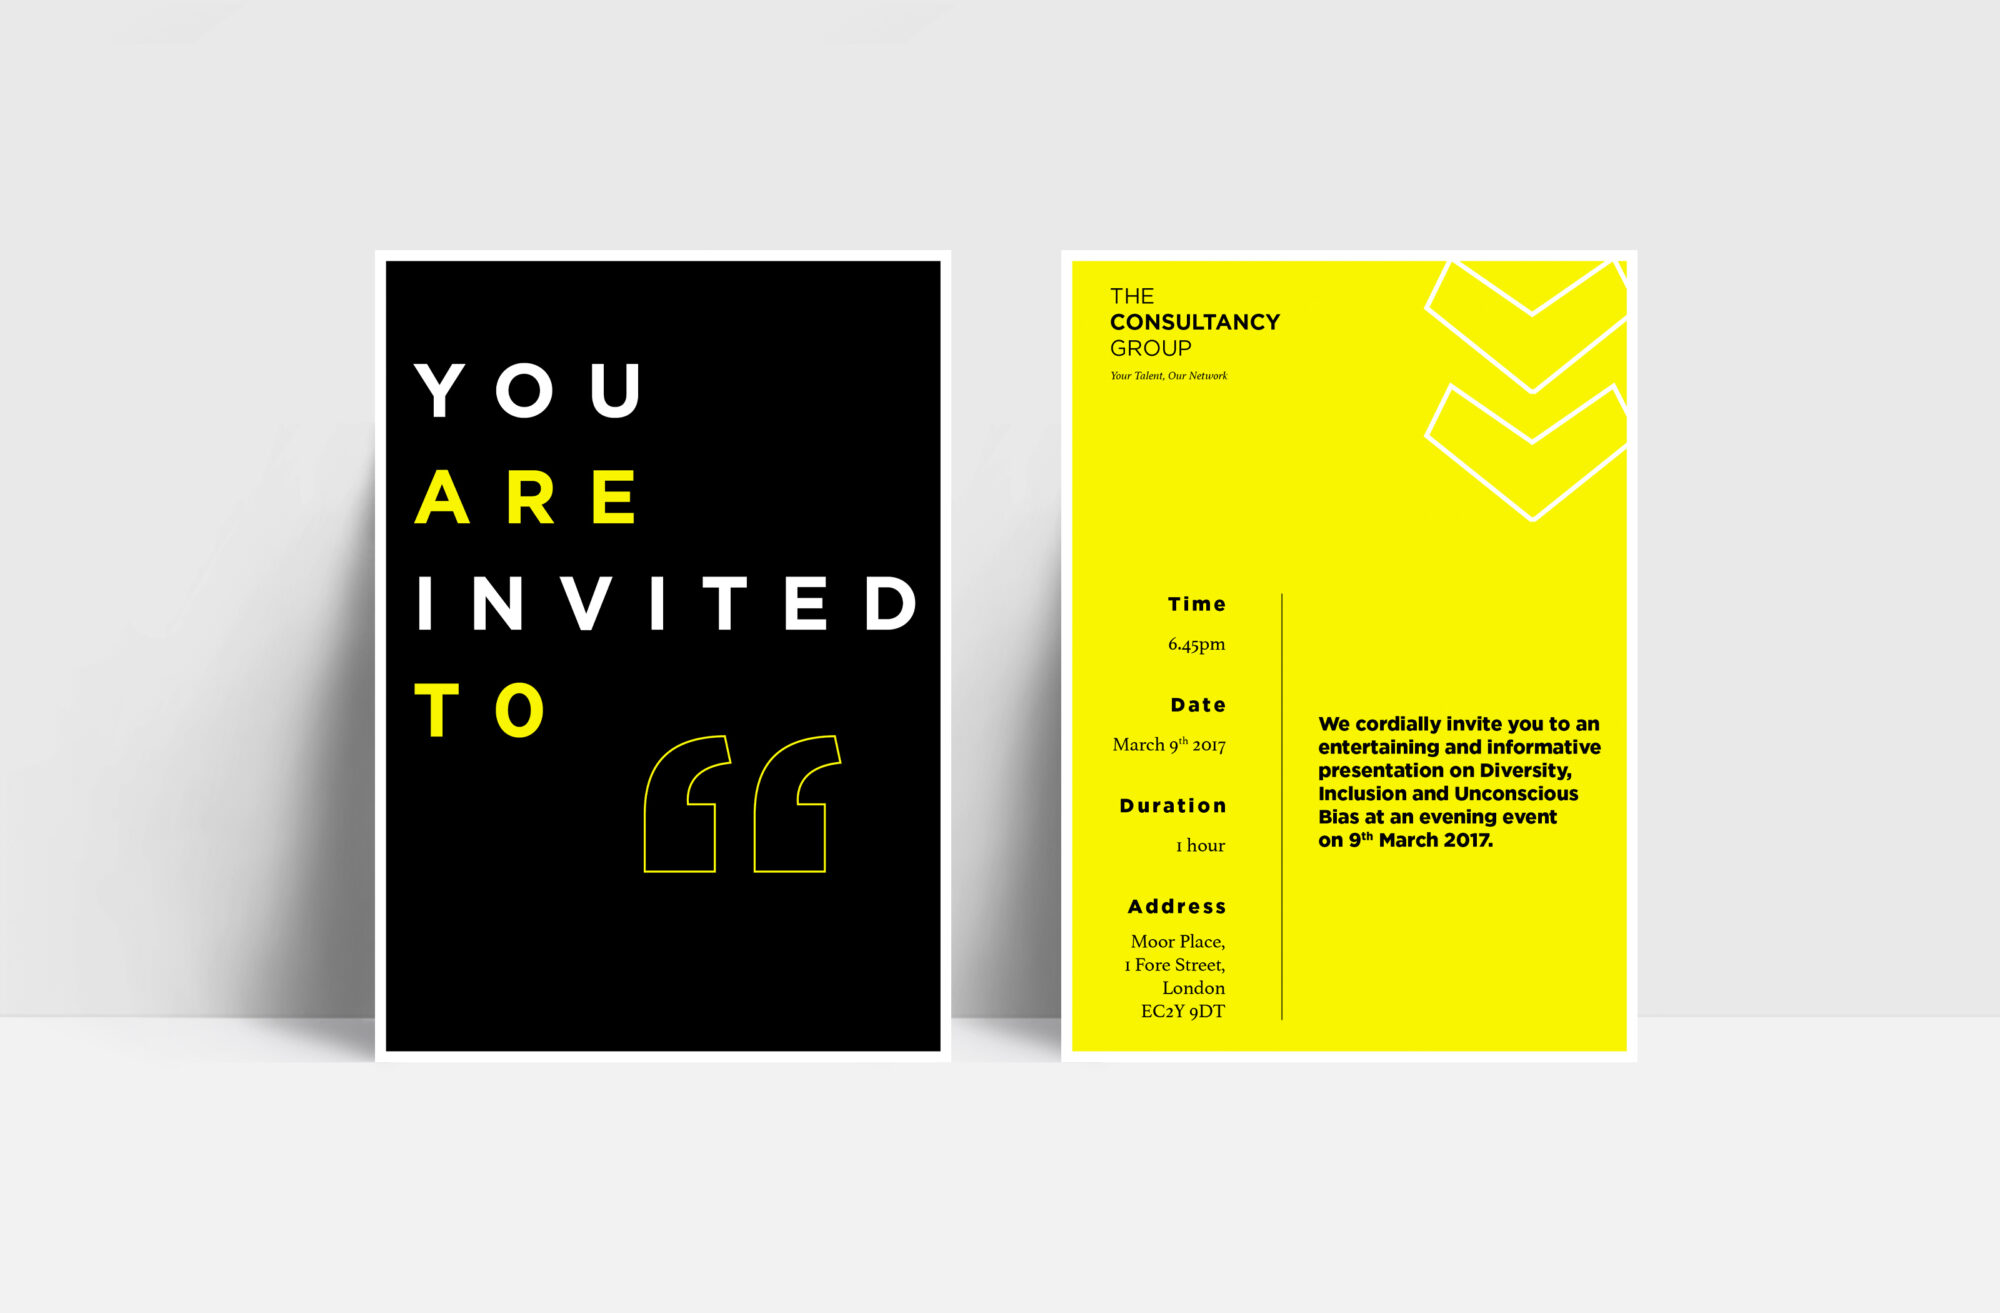 The Consultancy Group invite